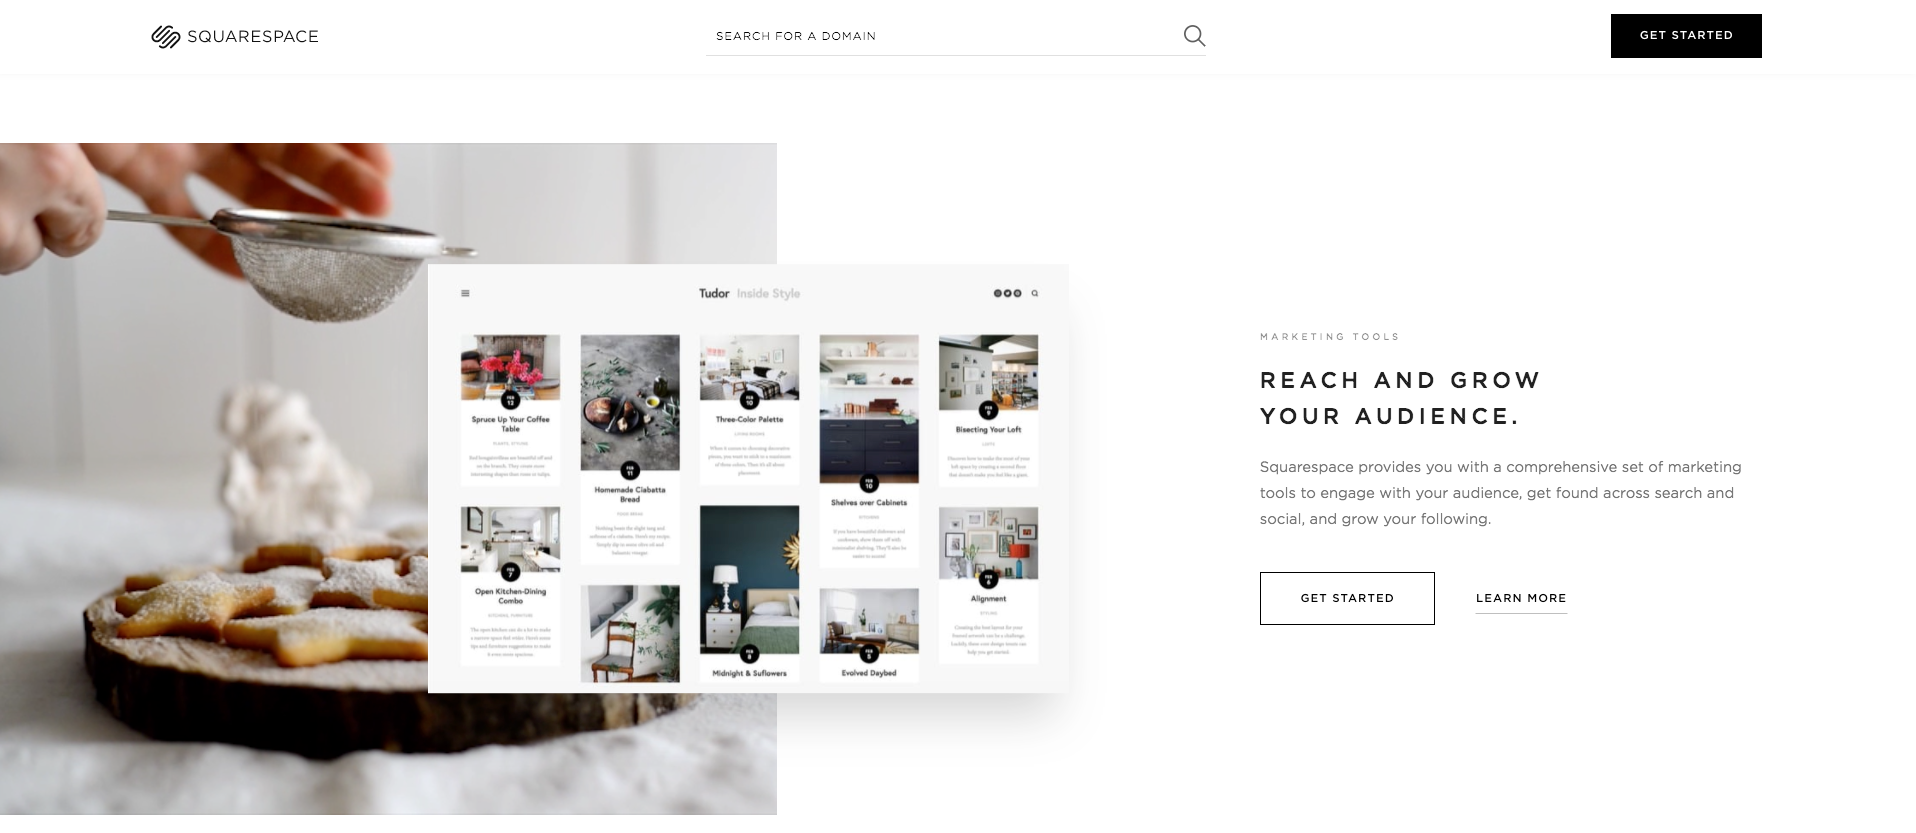 A website builder, Squarespace